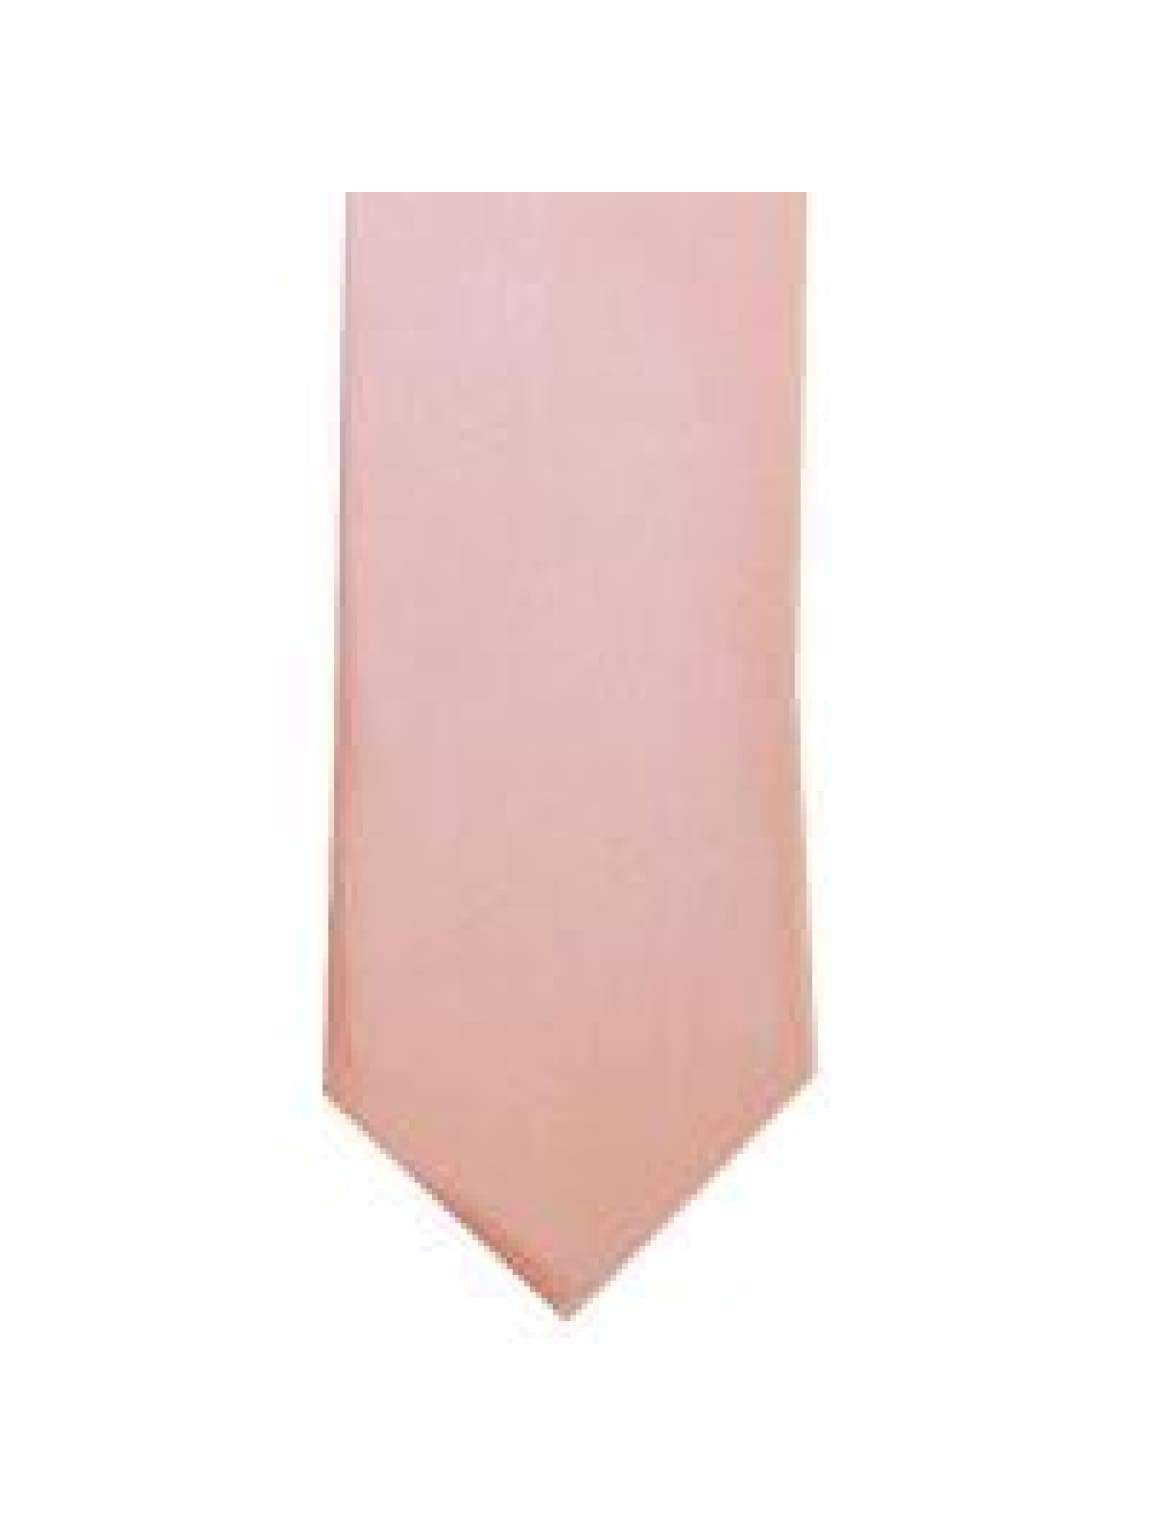 LA Smith Peach Skinny Weft Satin Tie - Accessories